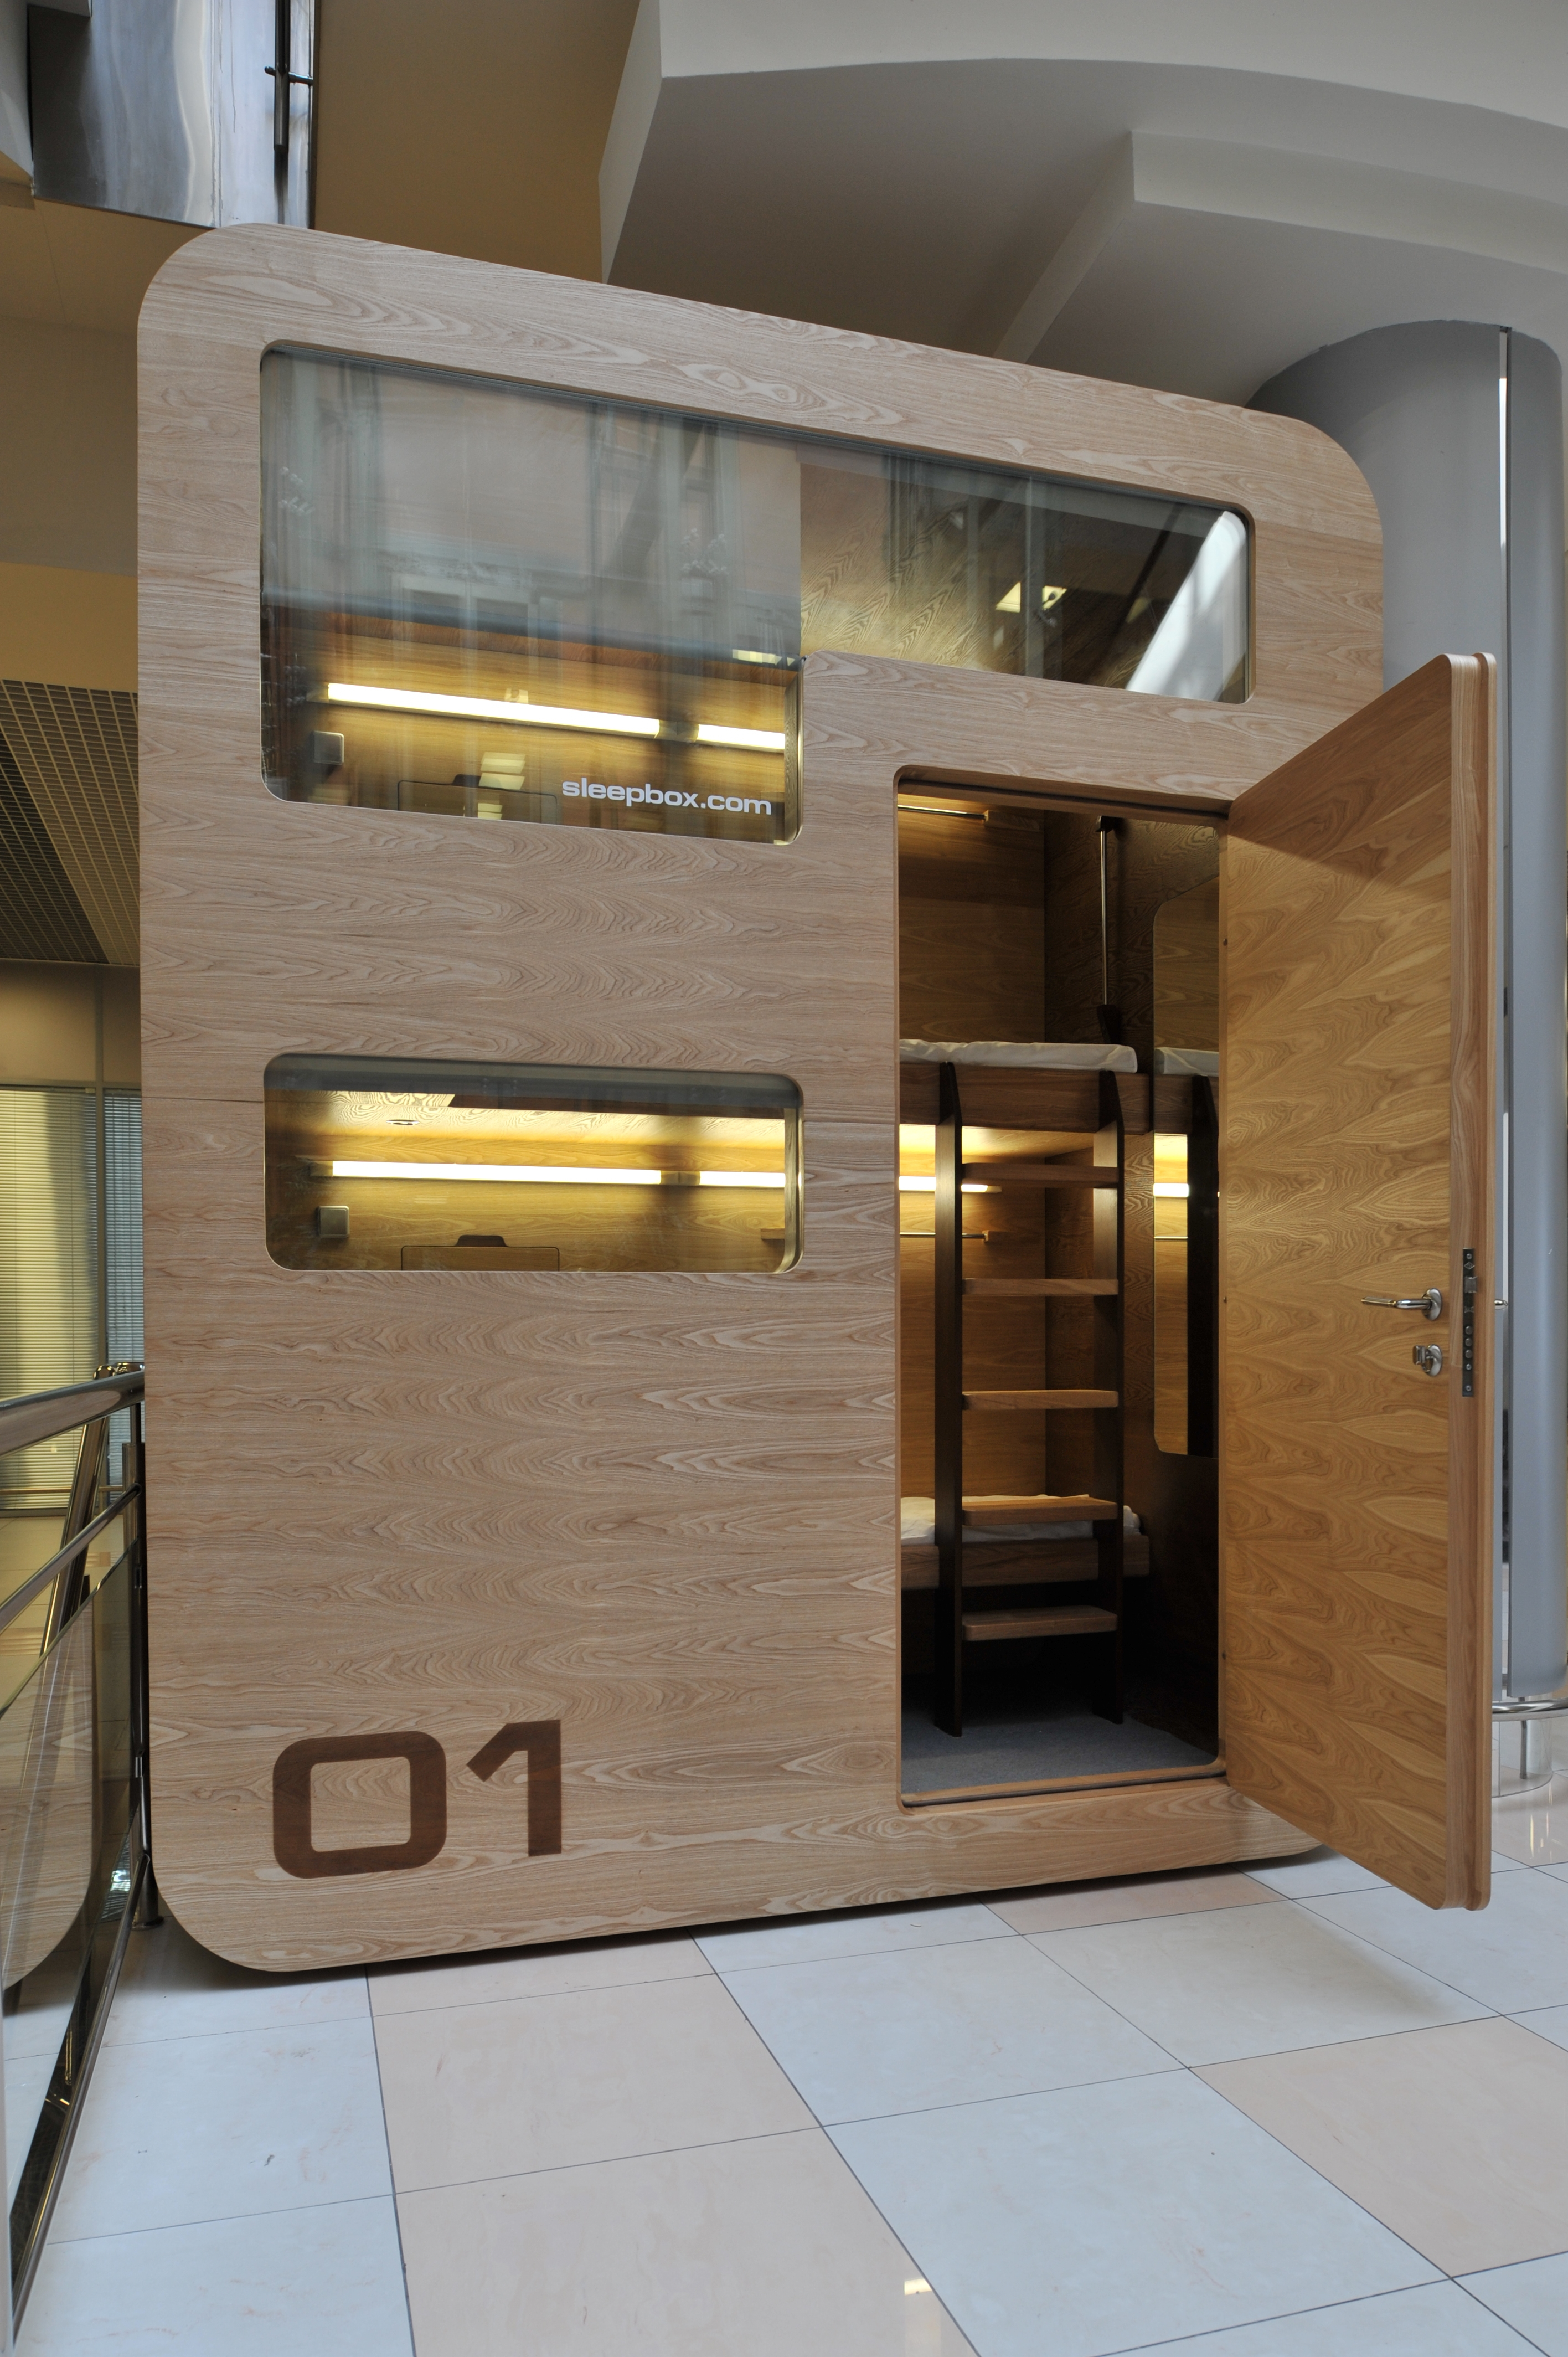 Airports Tiniest Hotels Sleeping In A Box CNN Travel - Box room